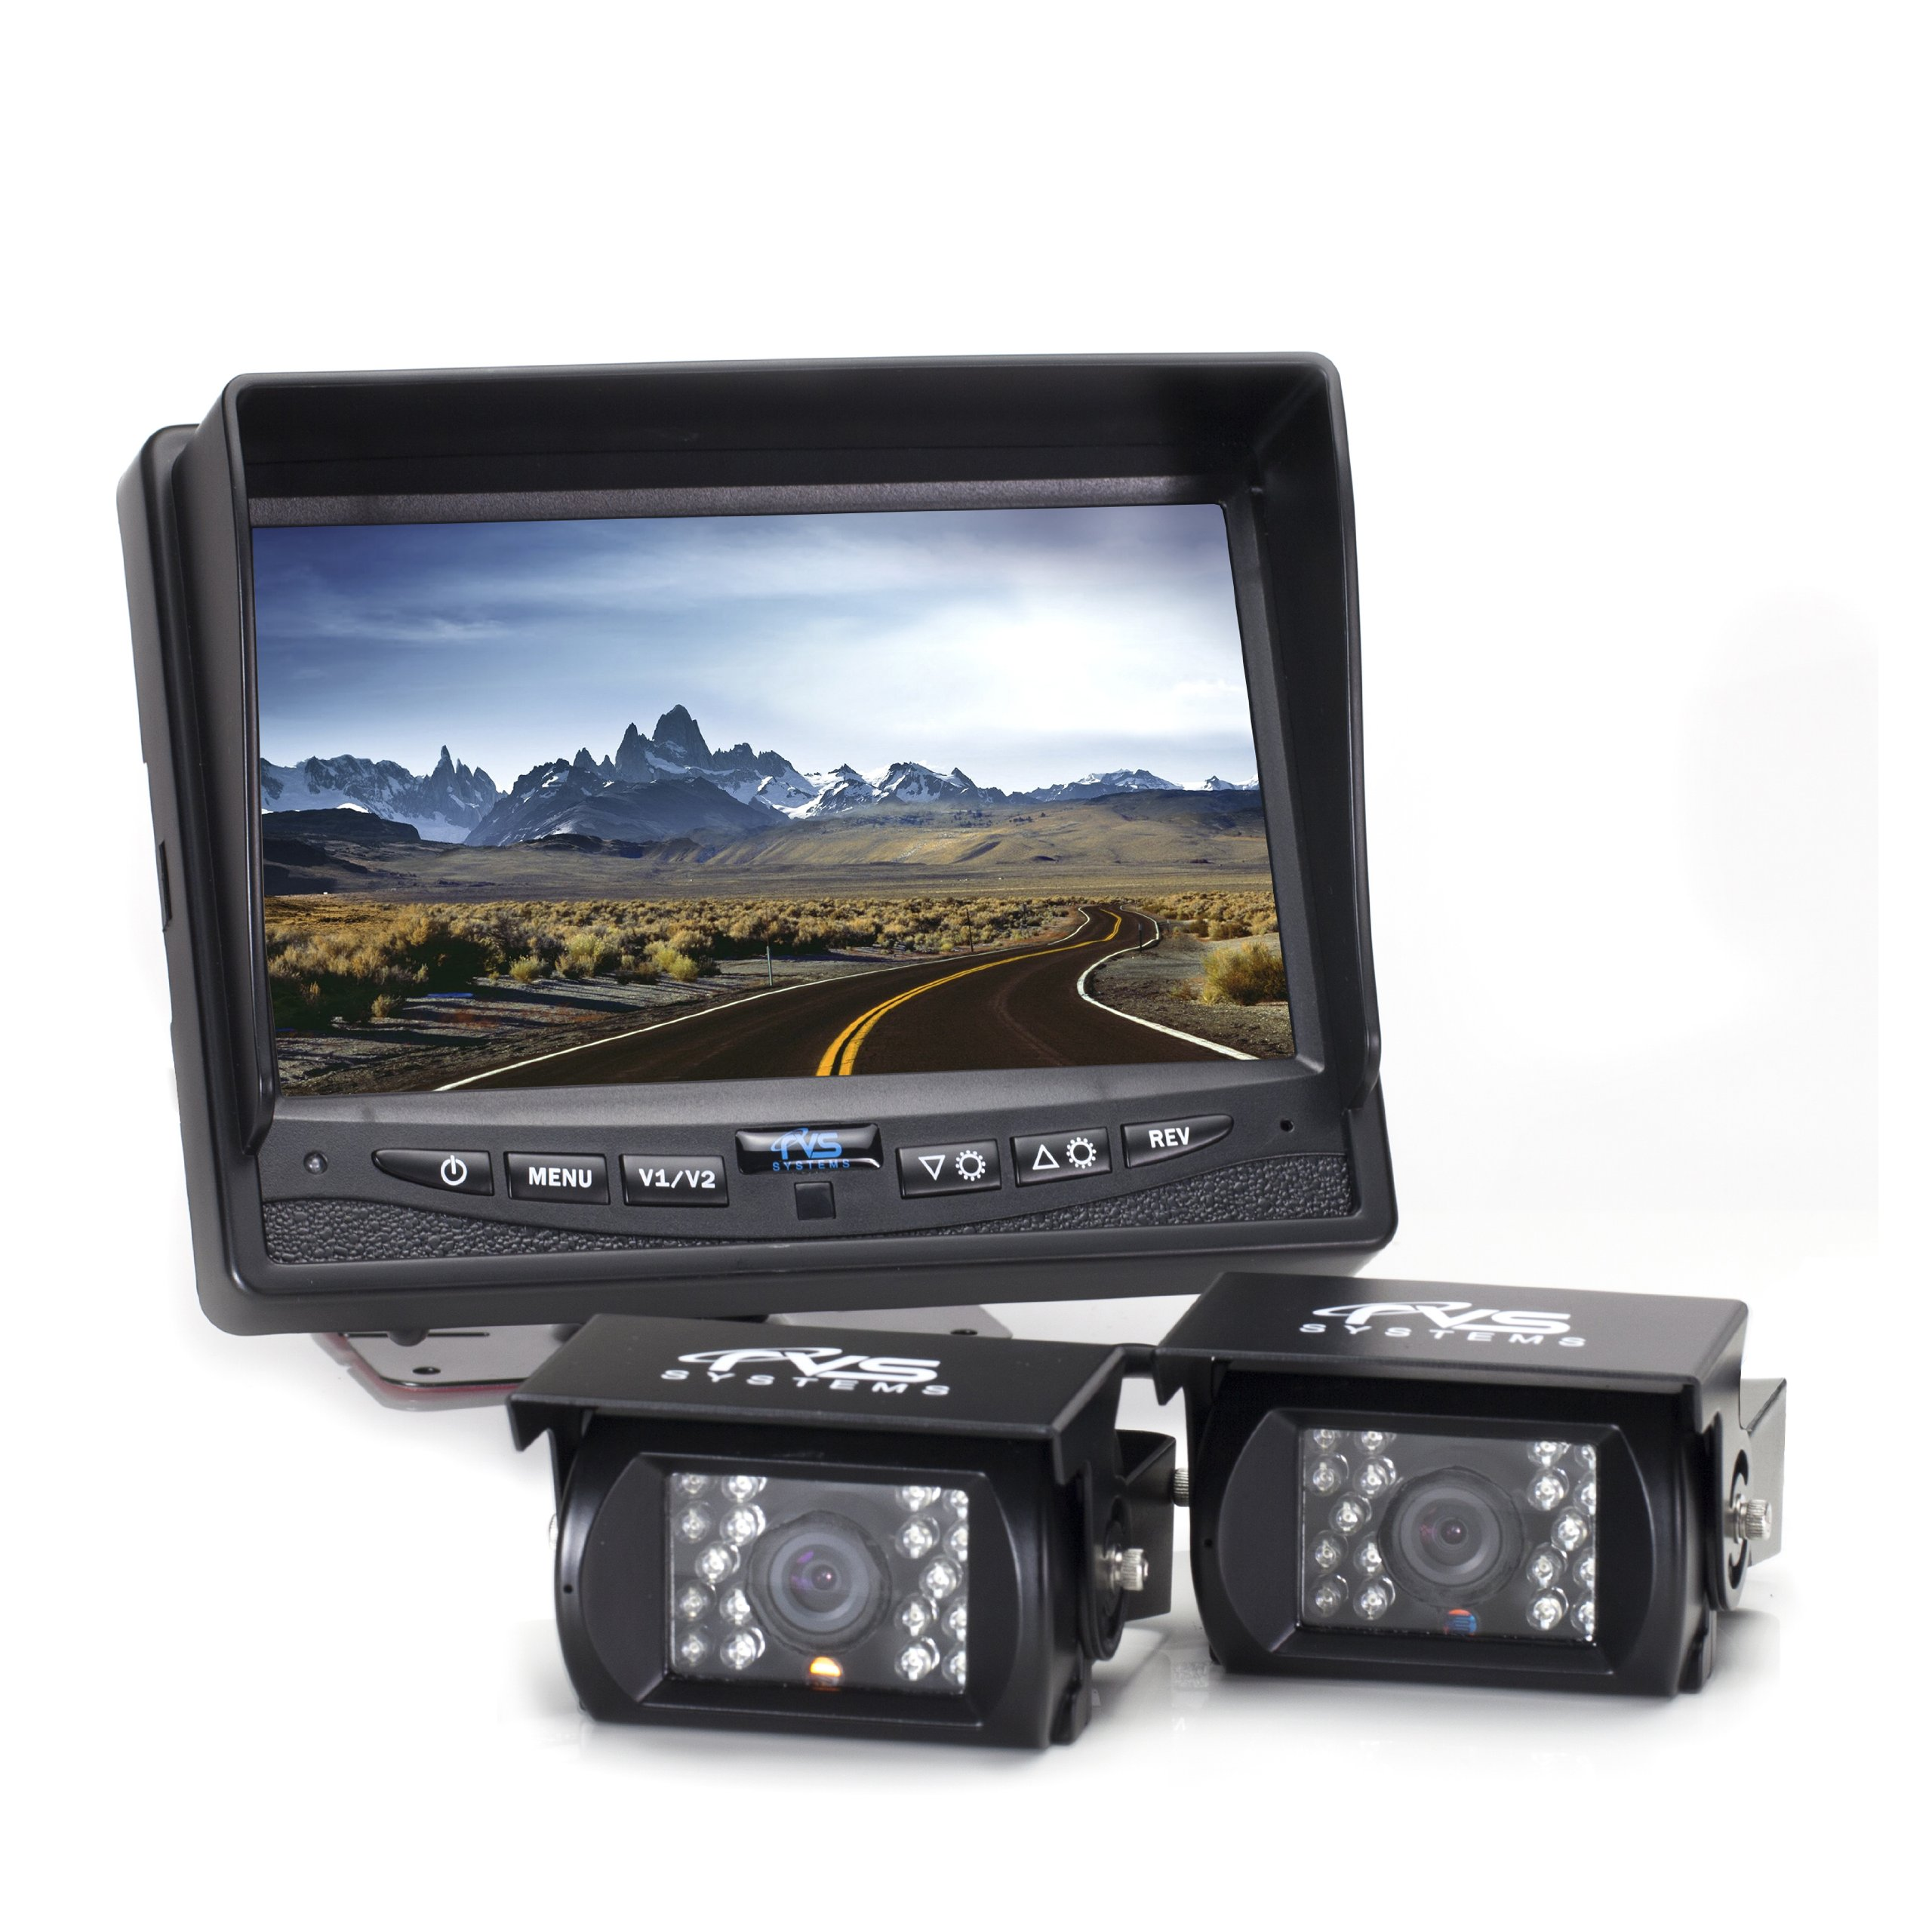 Rear View Safety RVS-770614 Backup Camera System (2 Camera) with 7 Inch Monitor for RV's, Trucks, Buses and Commercial Vehicles